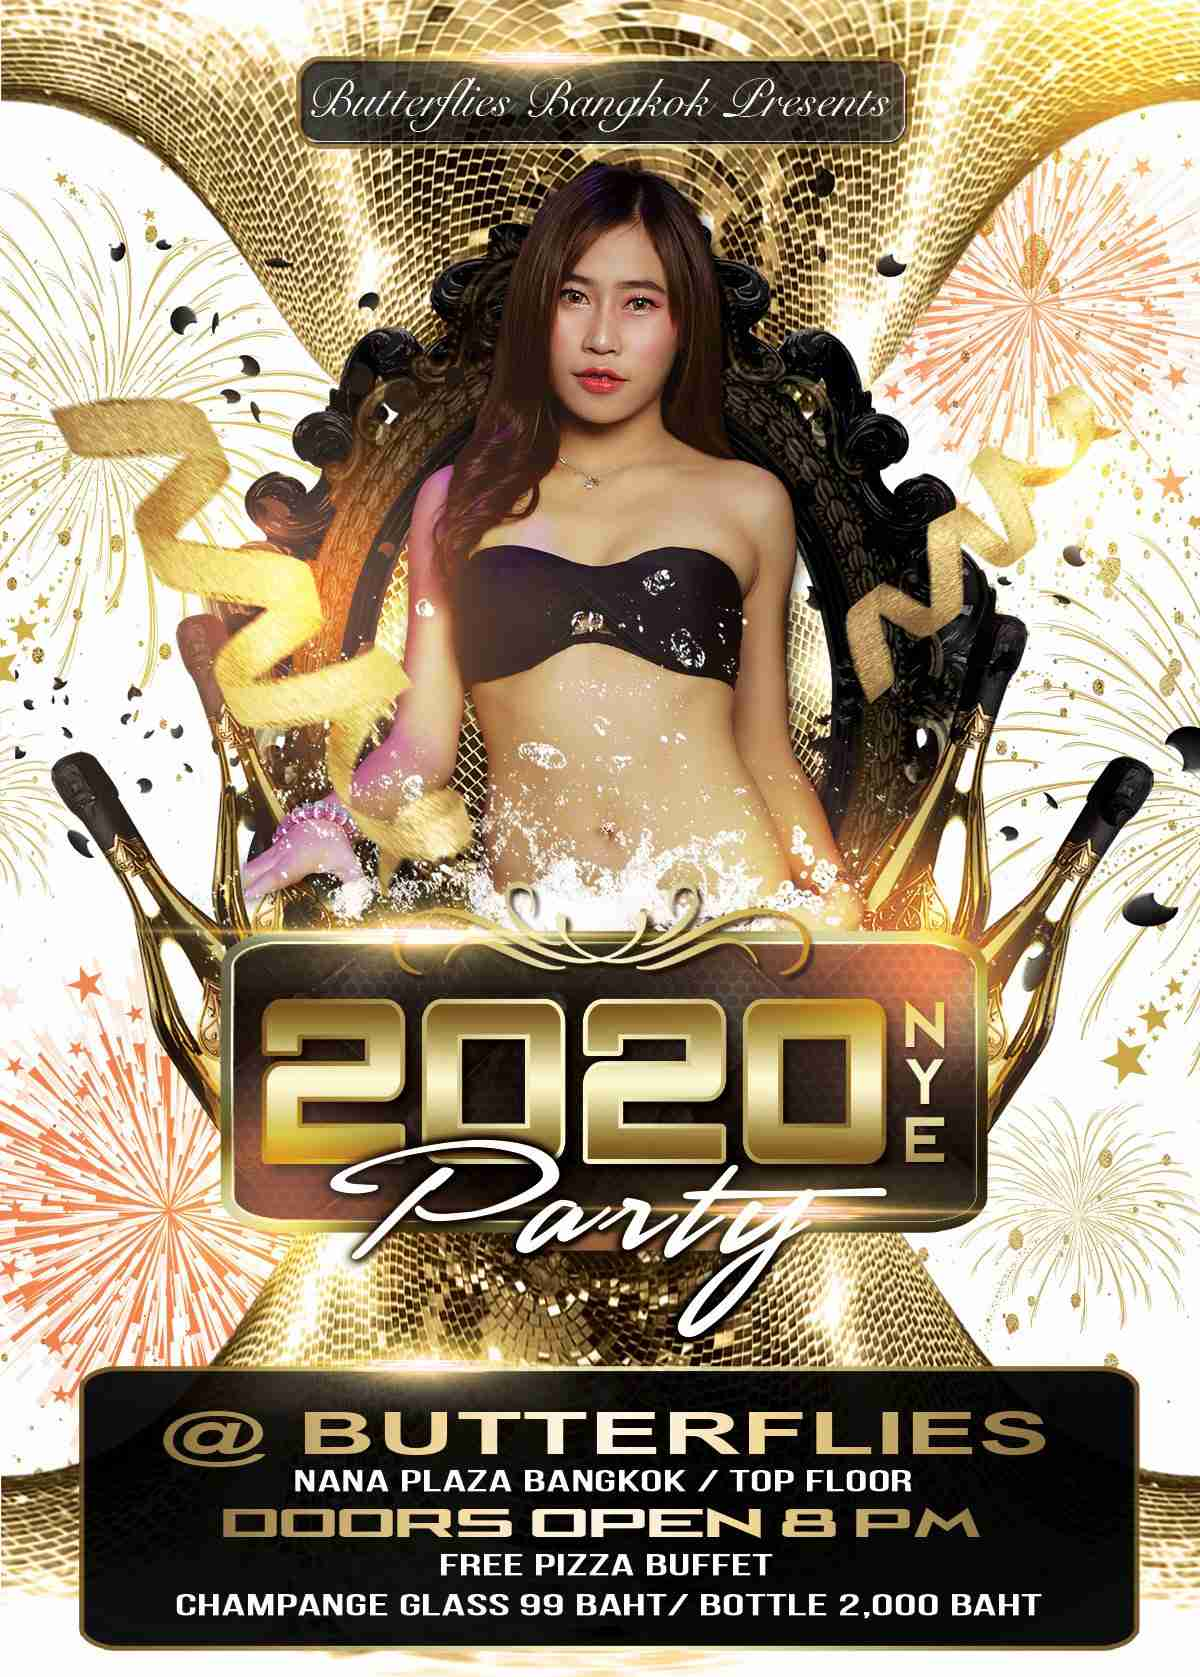 Butterflies New Year's Eve Party Nana Plaza Thailand Bangkok